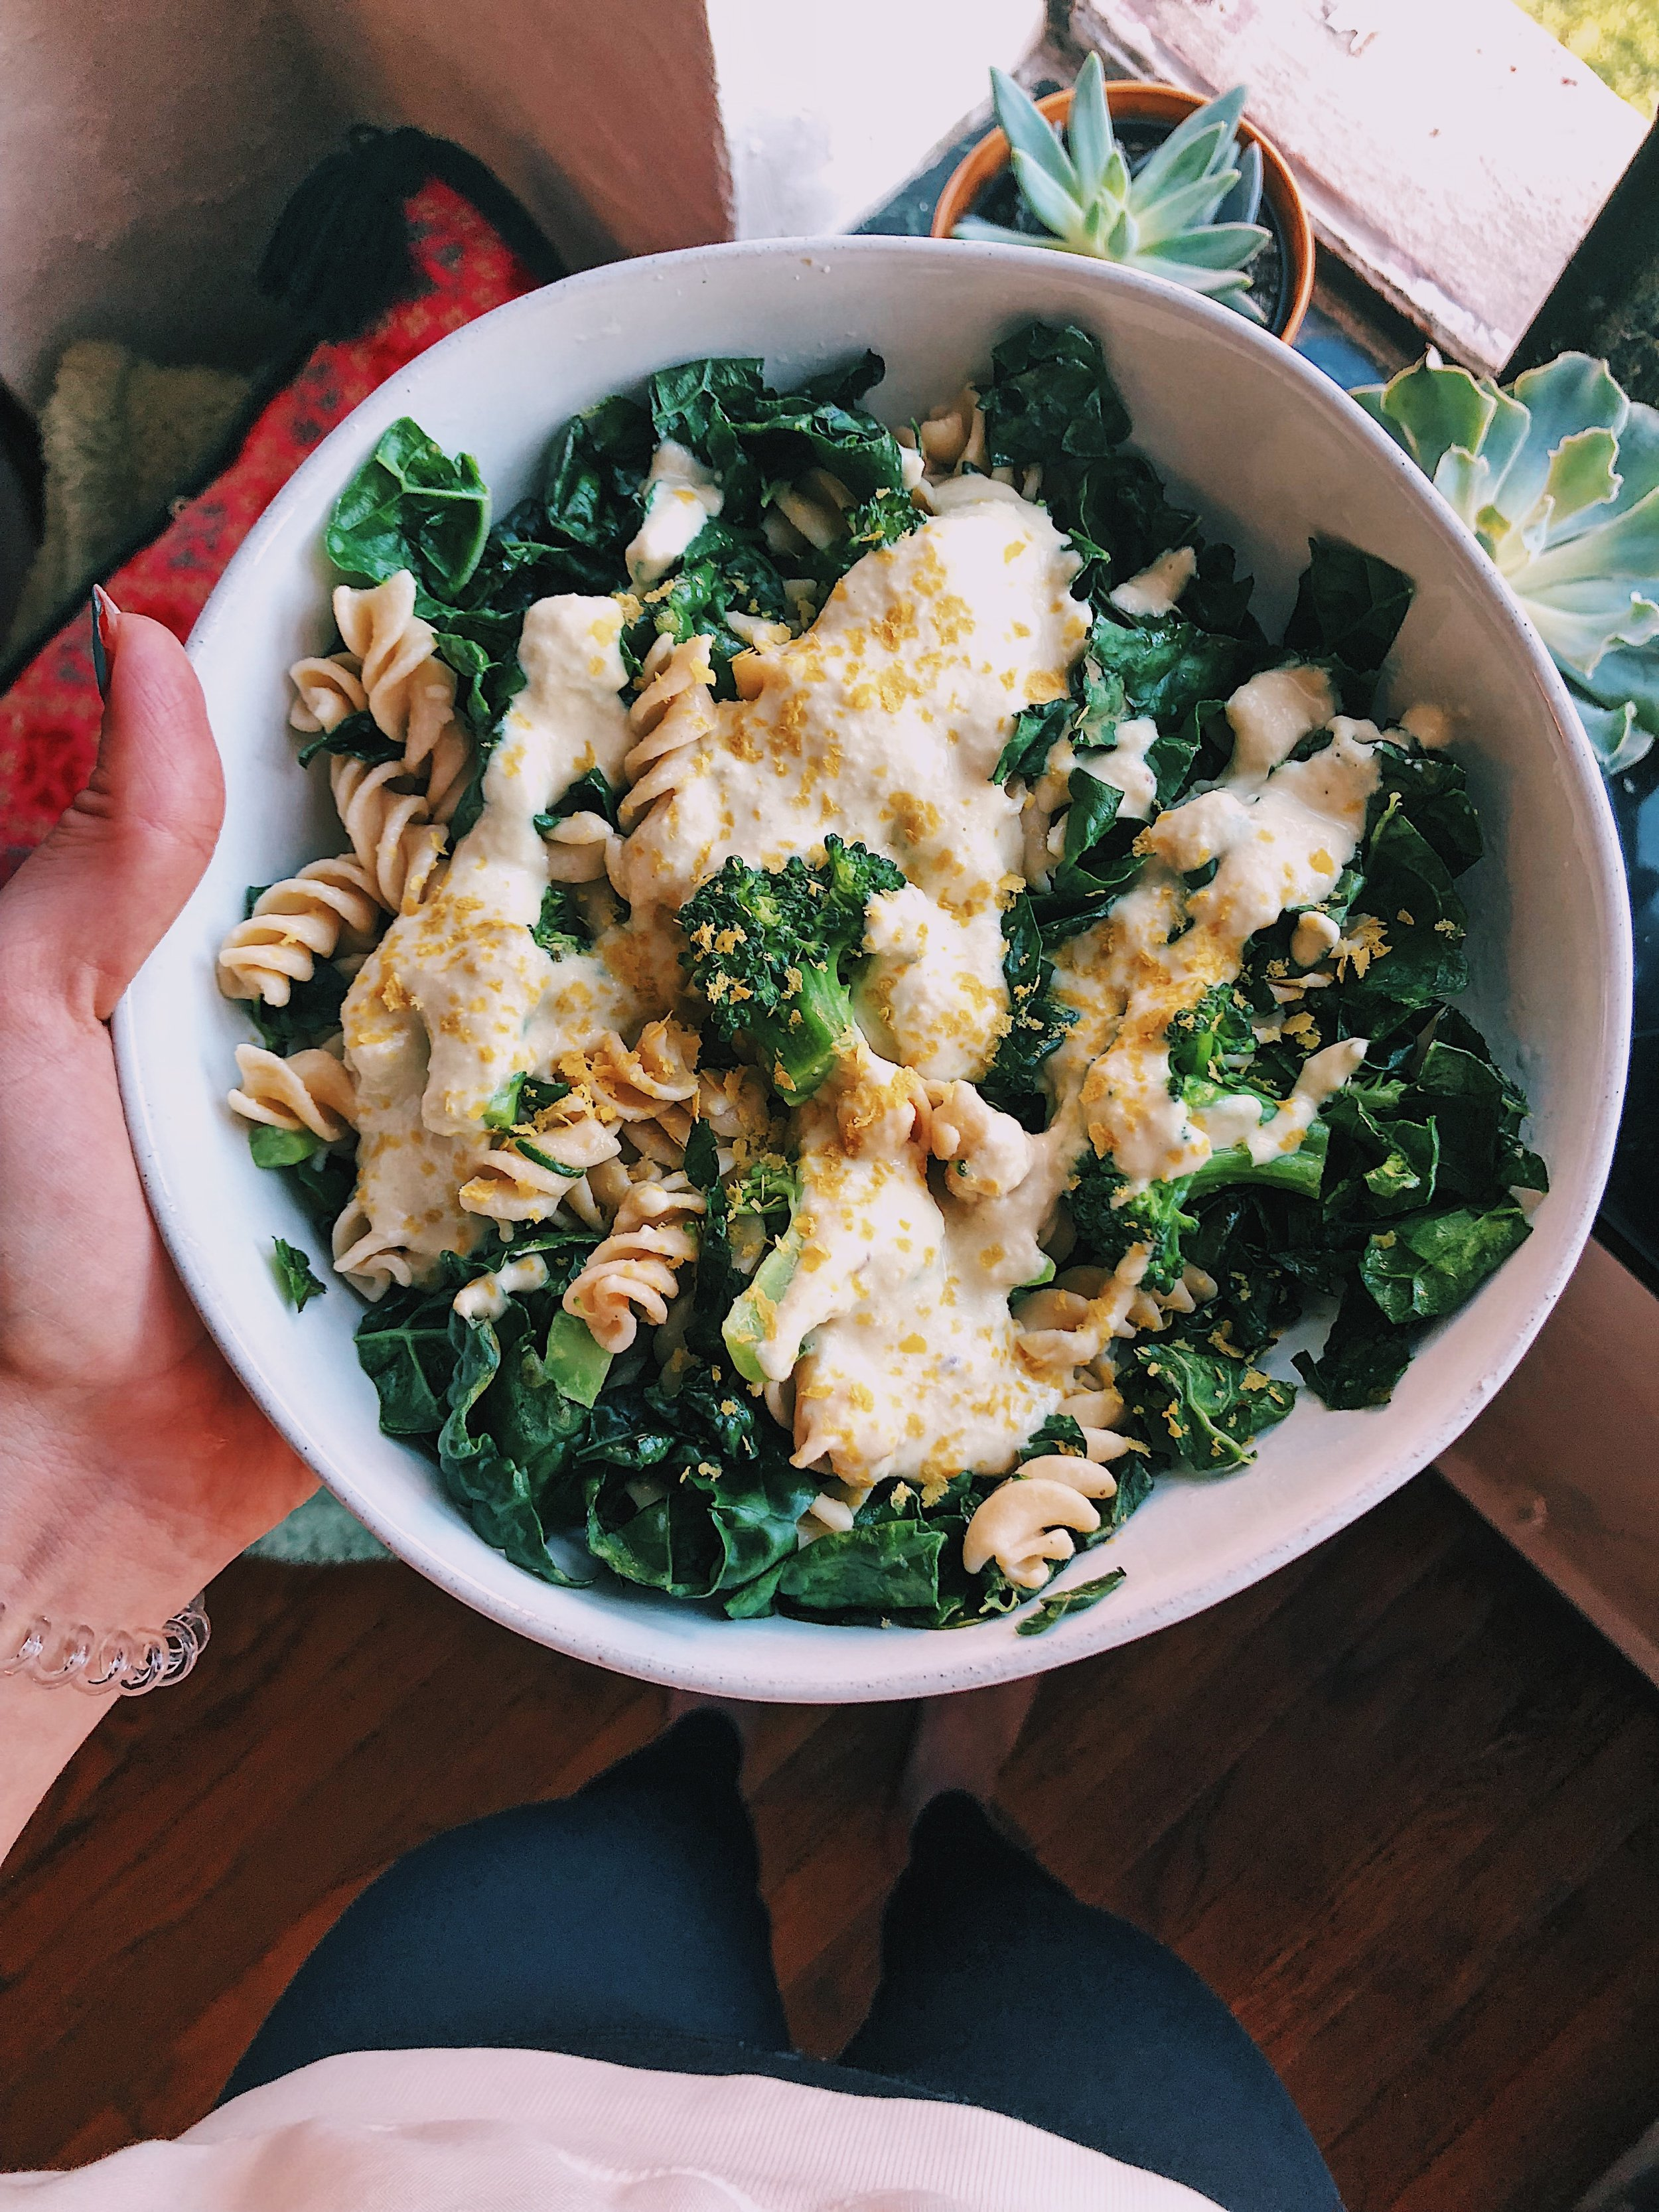 Sautéed kale and broccoli with Banza chickpea pasta,  cashew cream, and nutritional yeast.